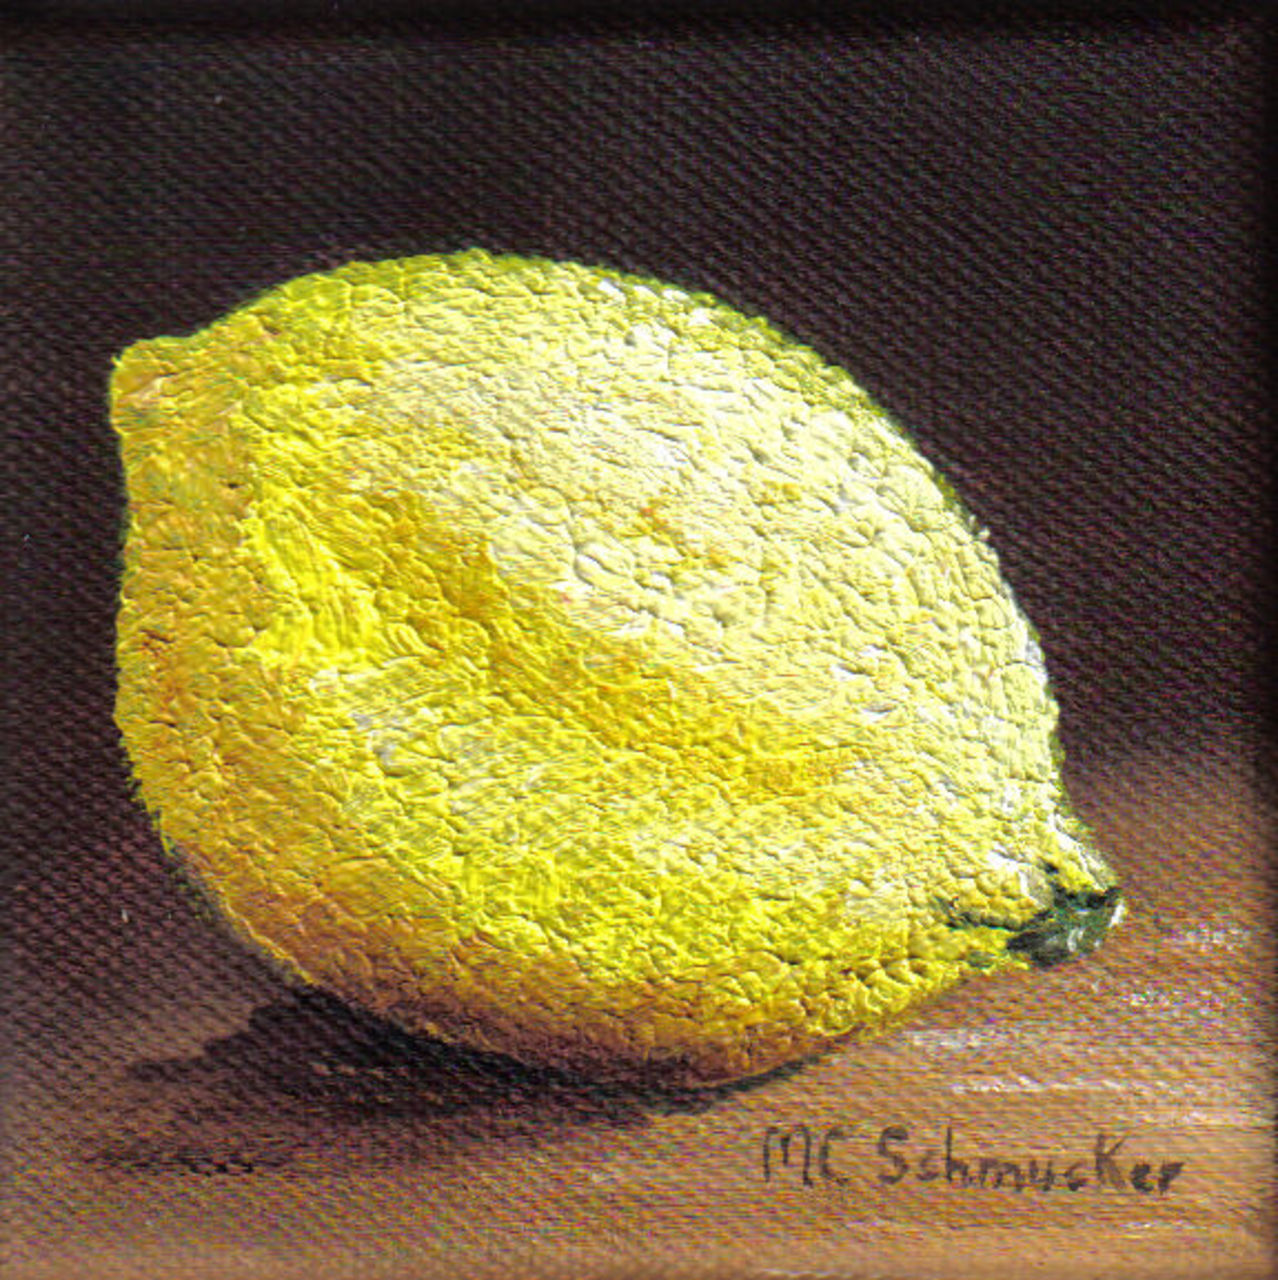 Schmucker Marie-Christine Citron